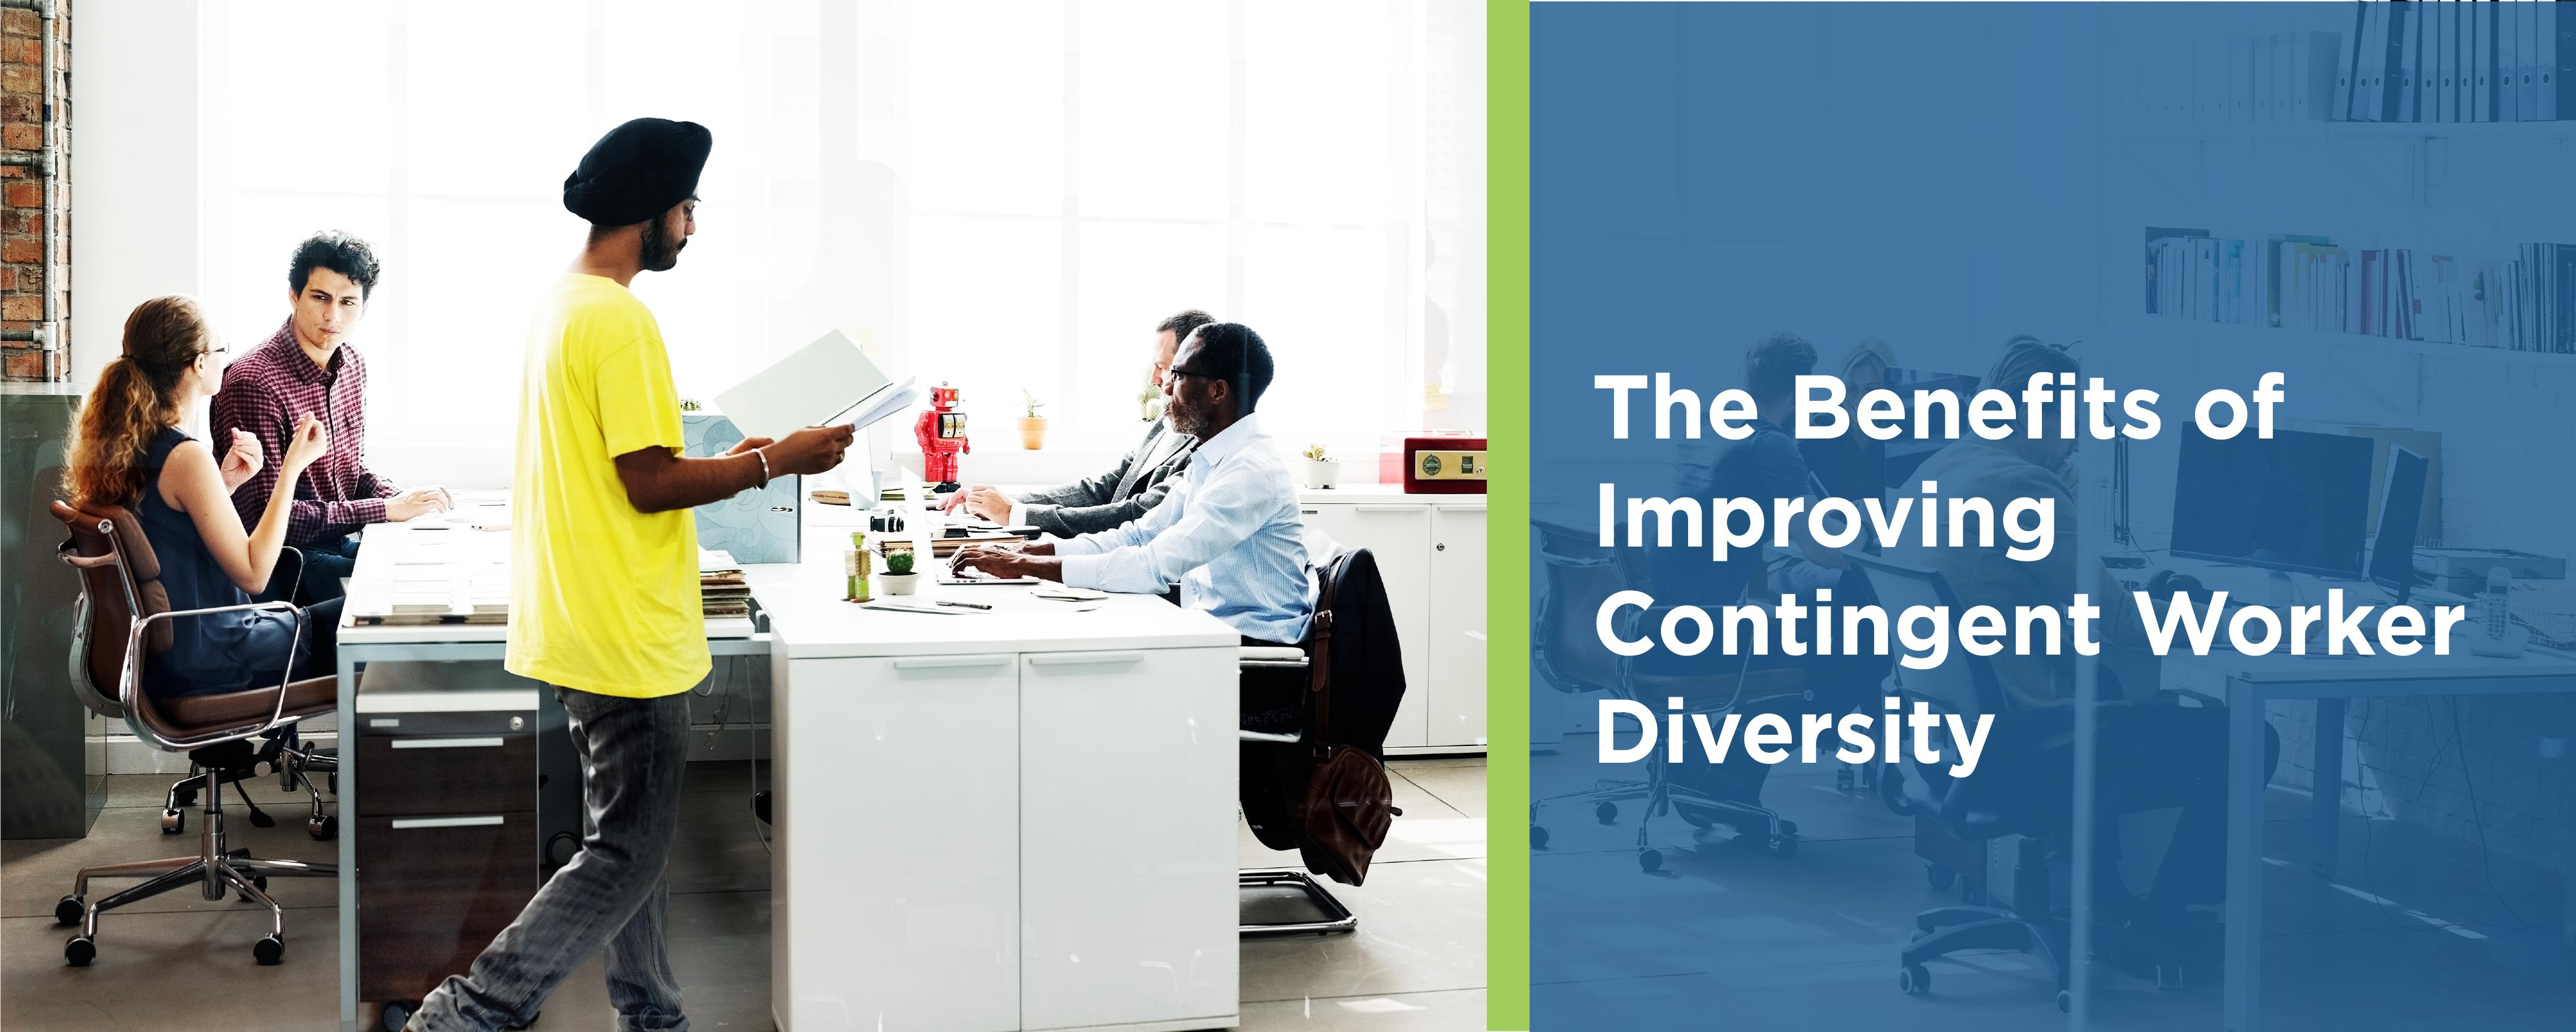 The Benefits of Improving Contingent Worker Diversity